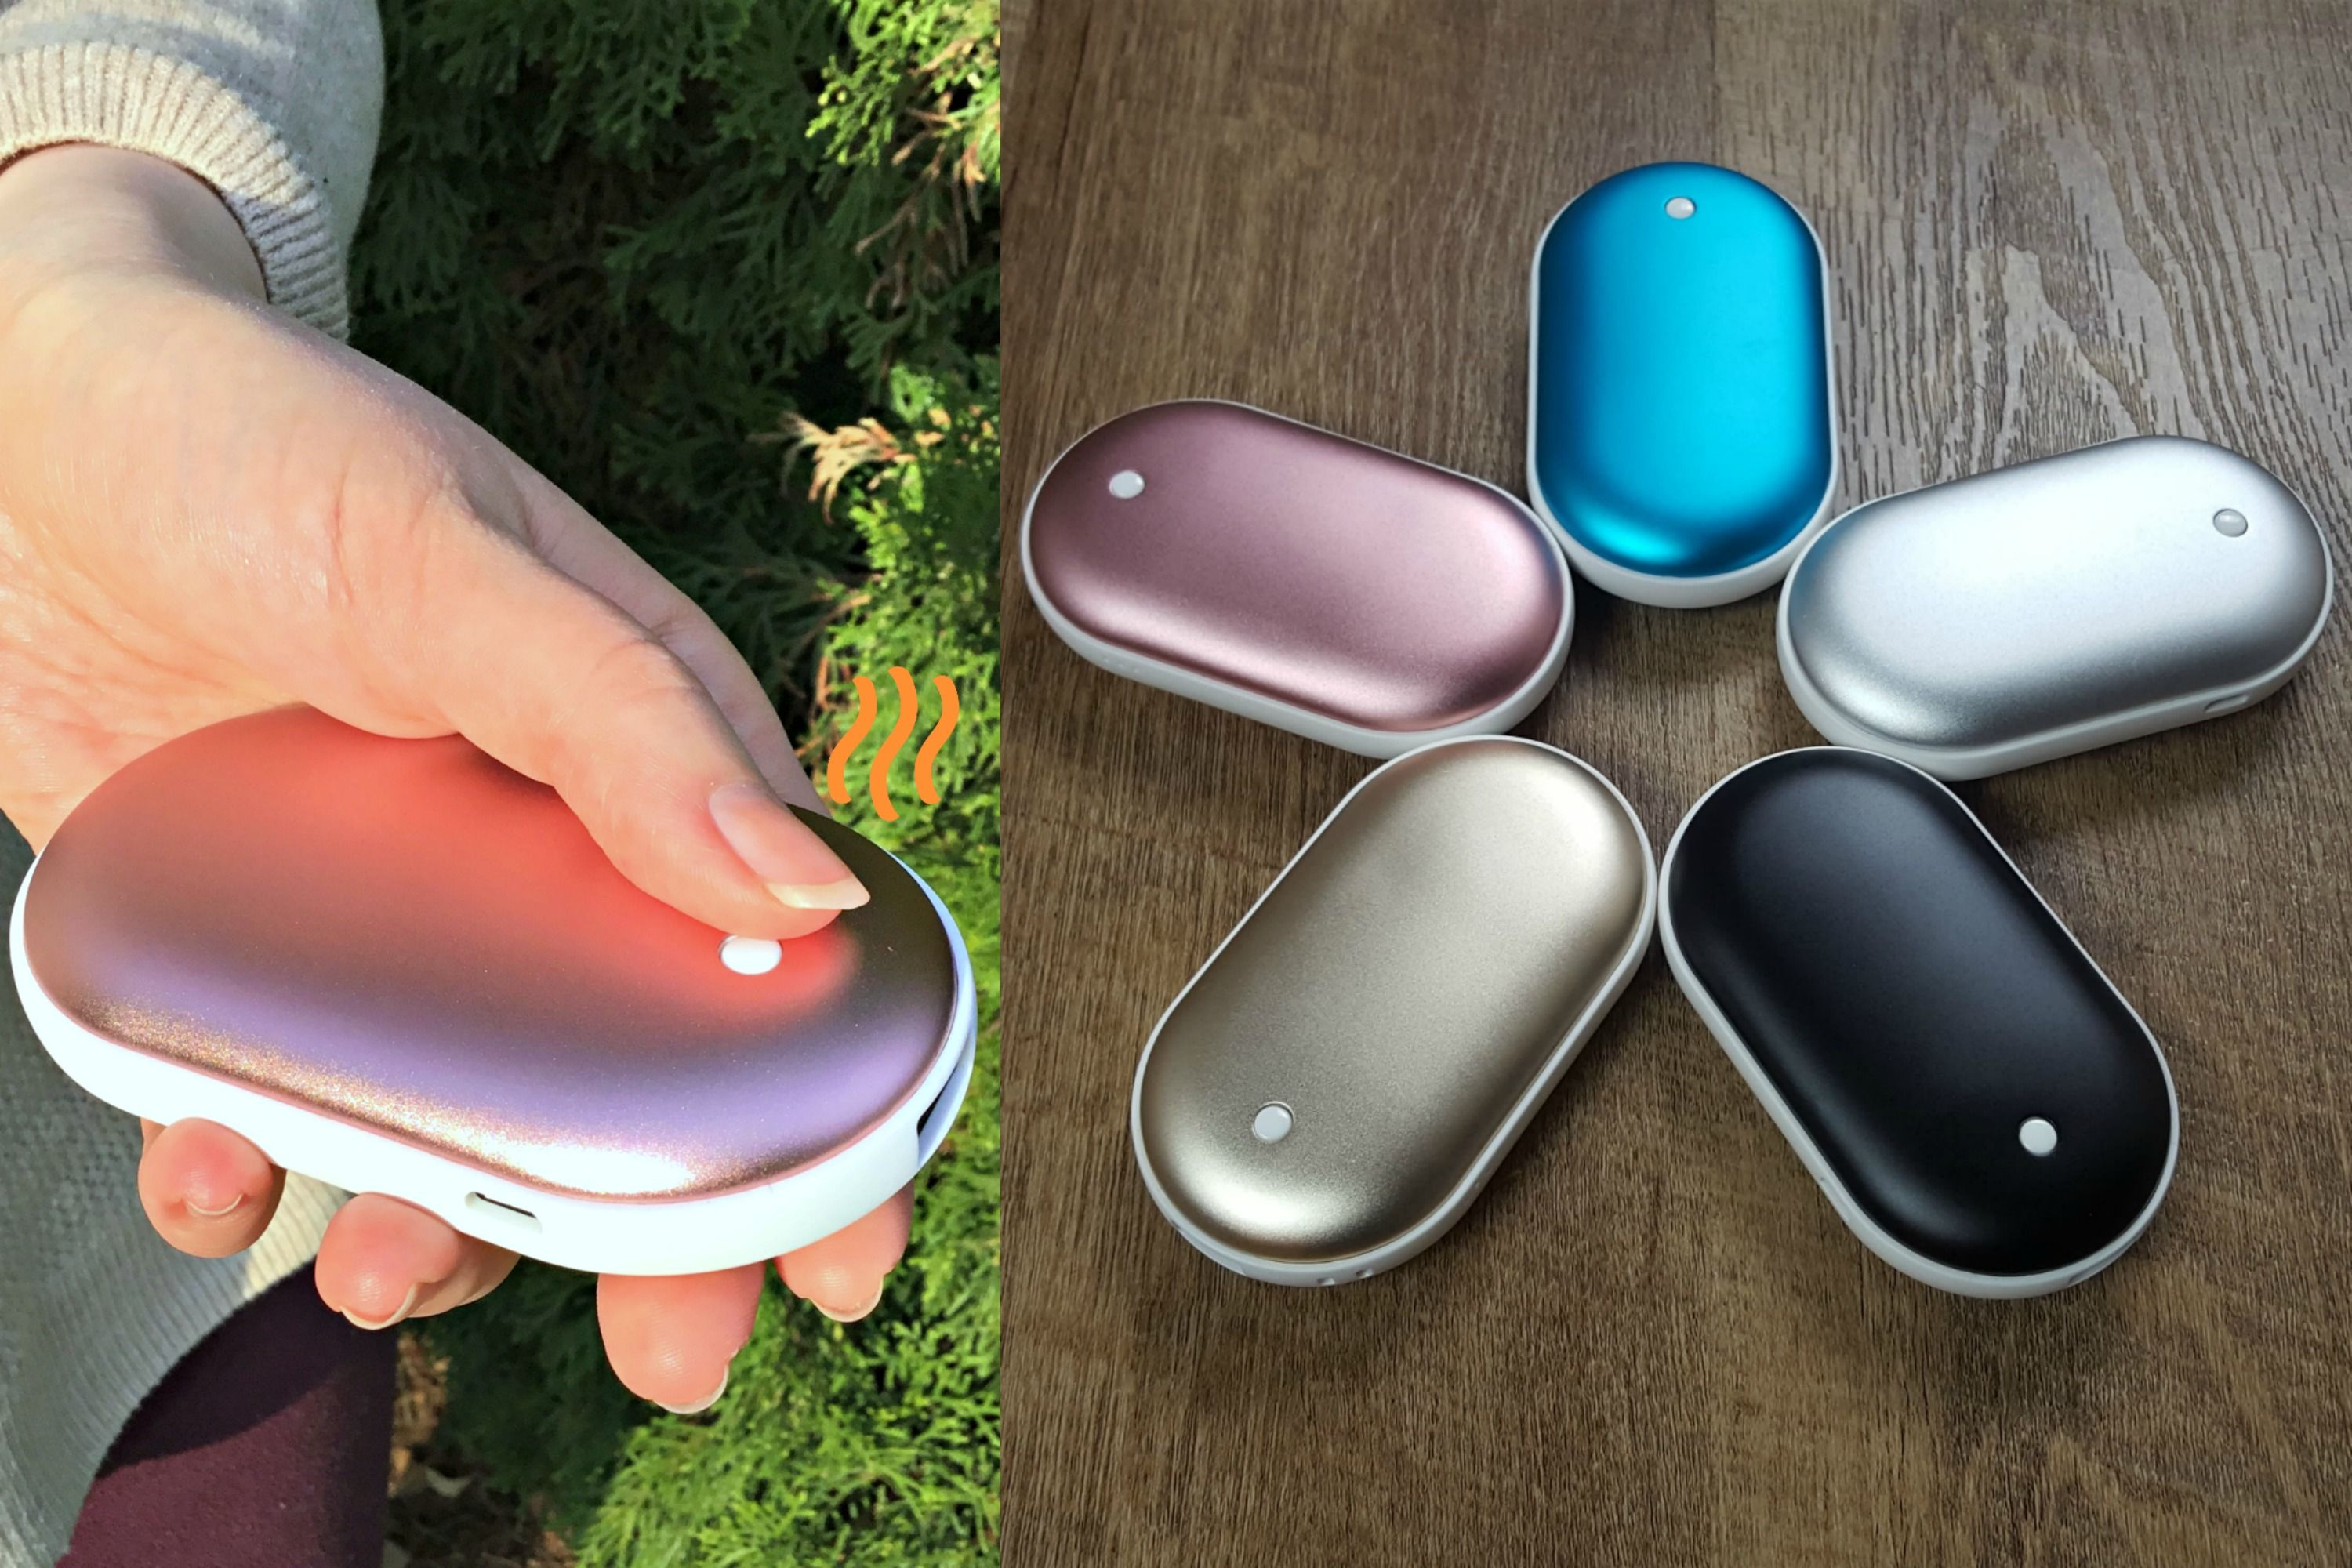 Rechargeable Hand Warmer Tired Of Buying Those Hand Warmers For One